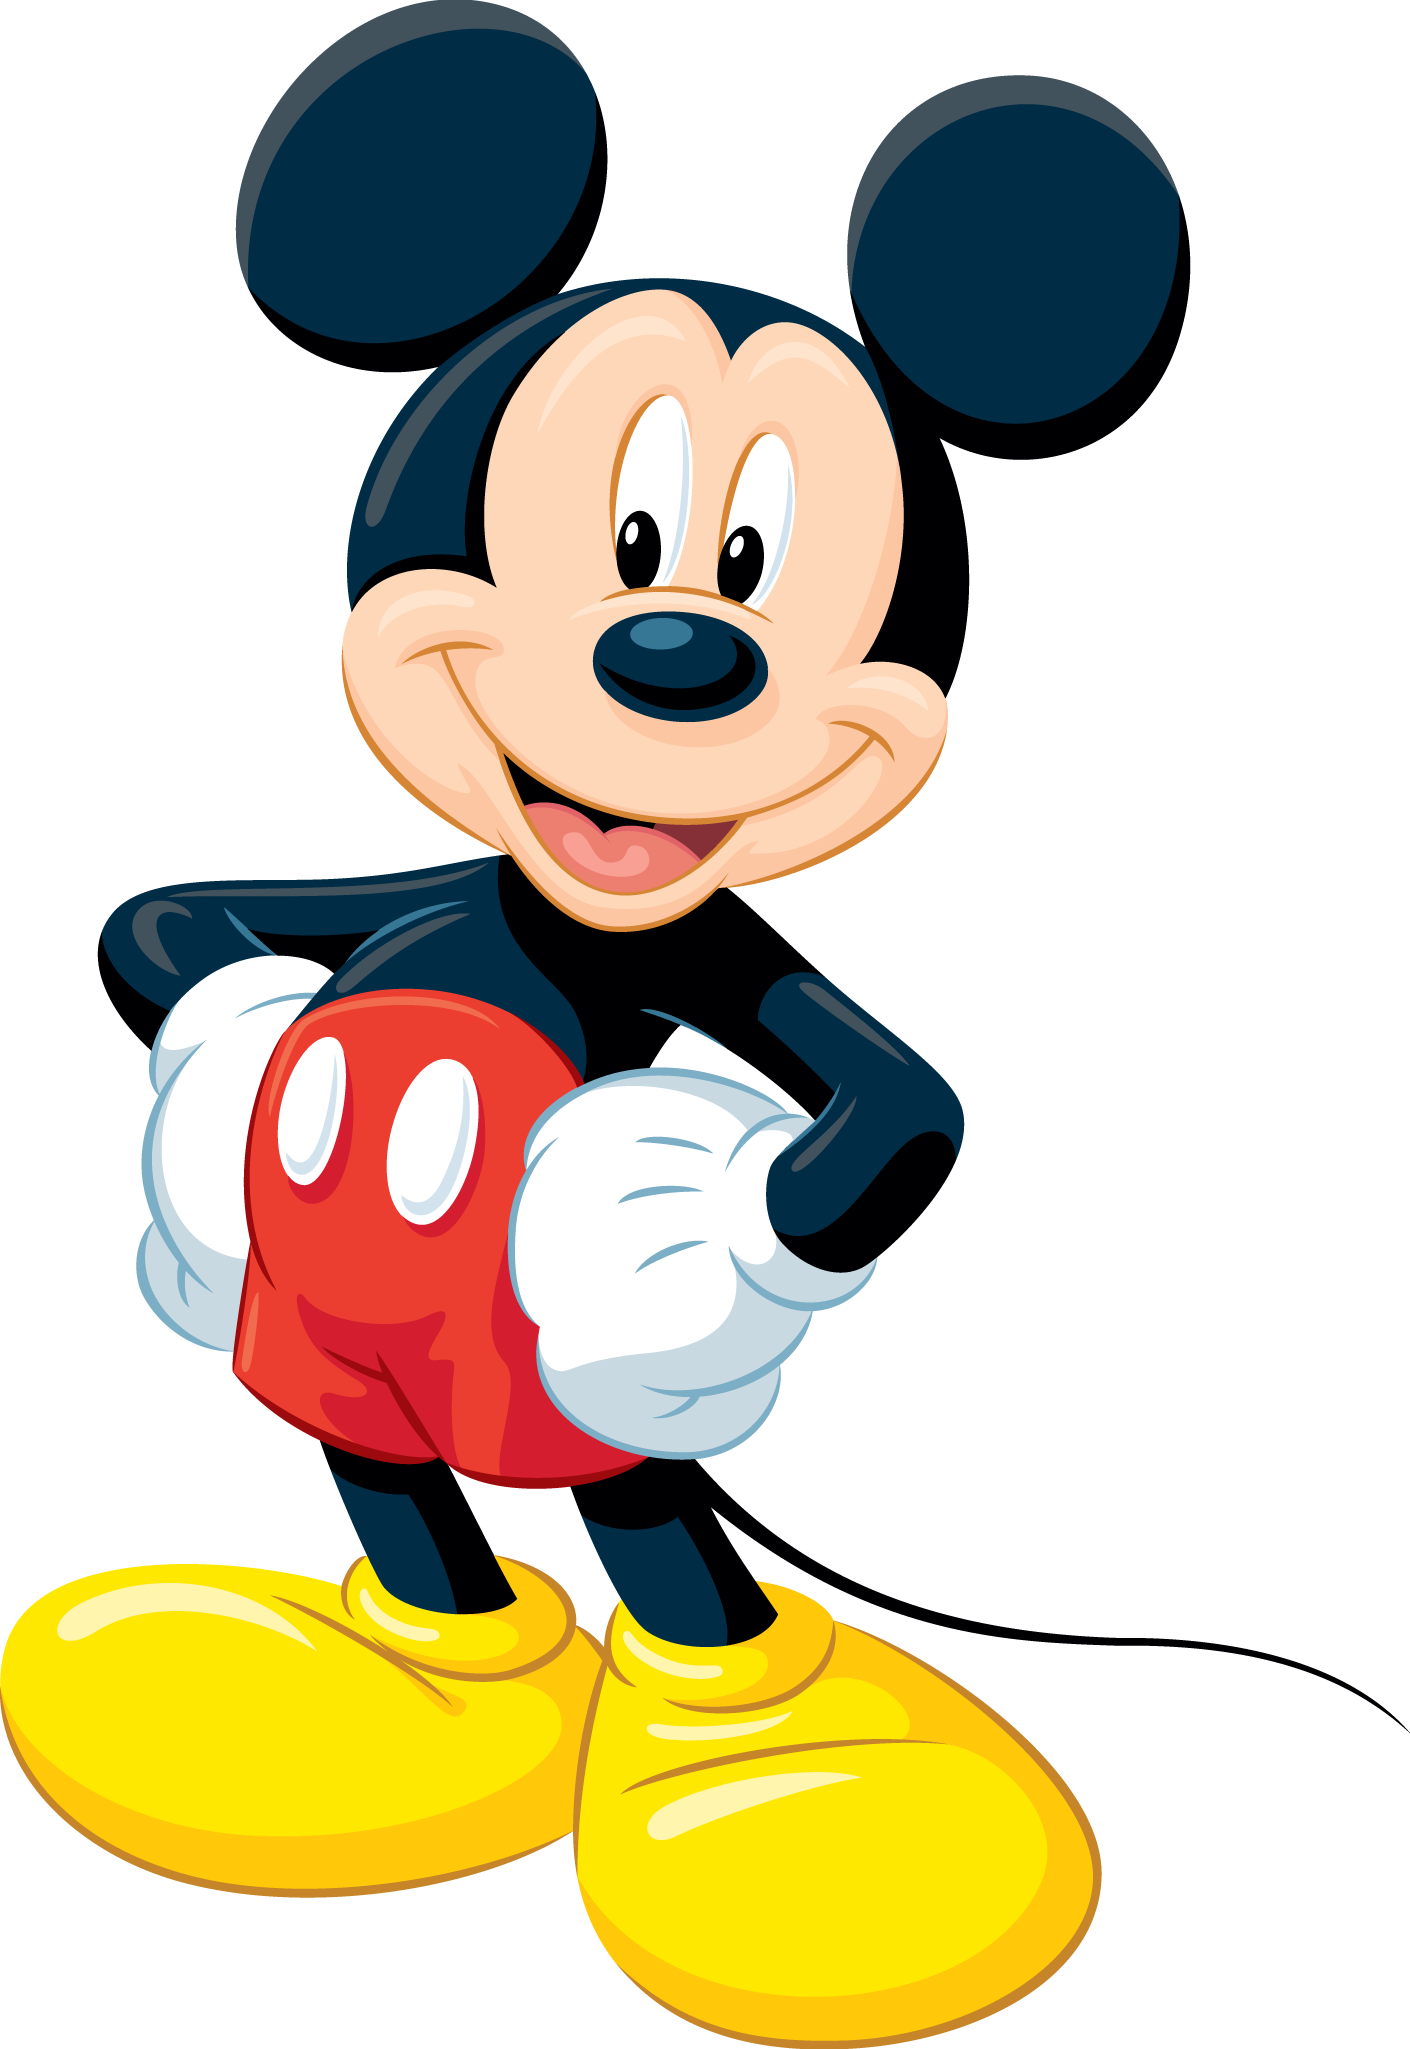 fc4be040728f9 Mickey .png Transparent   PNG Clipart Free Download - YA-webdesign